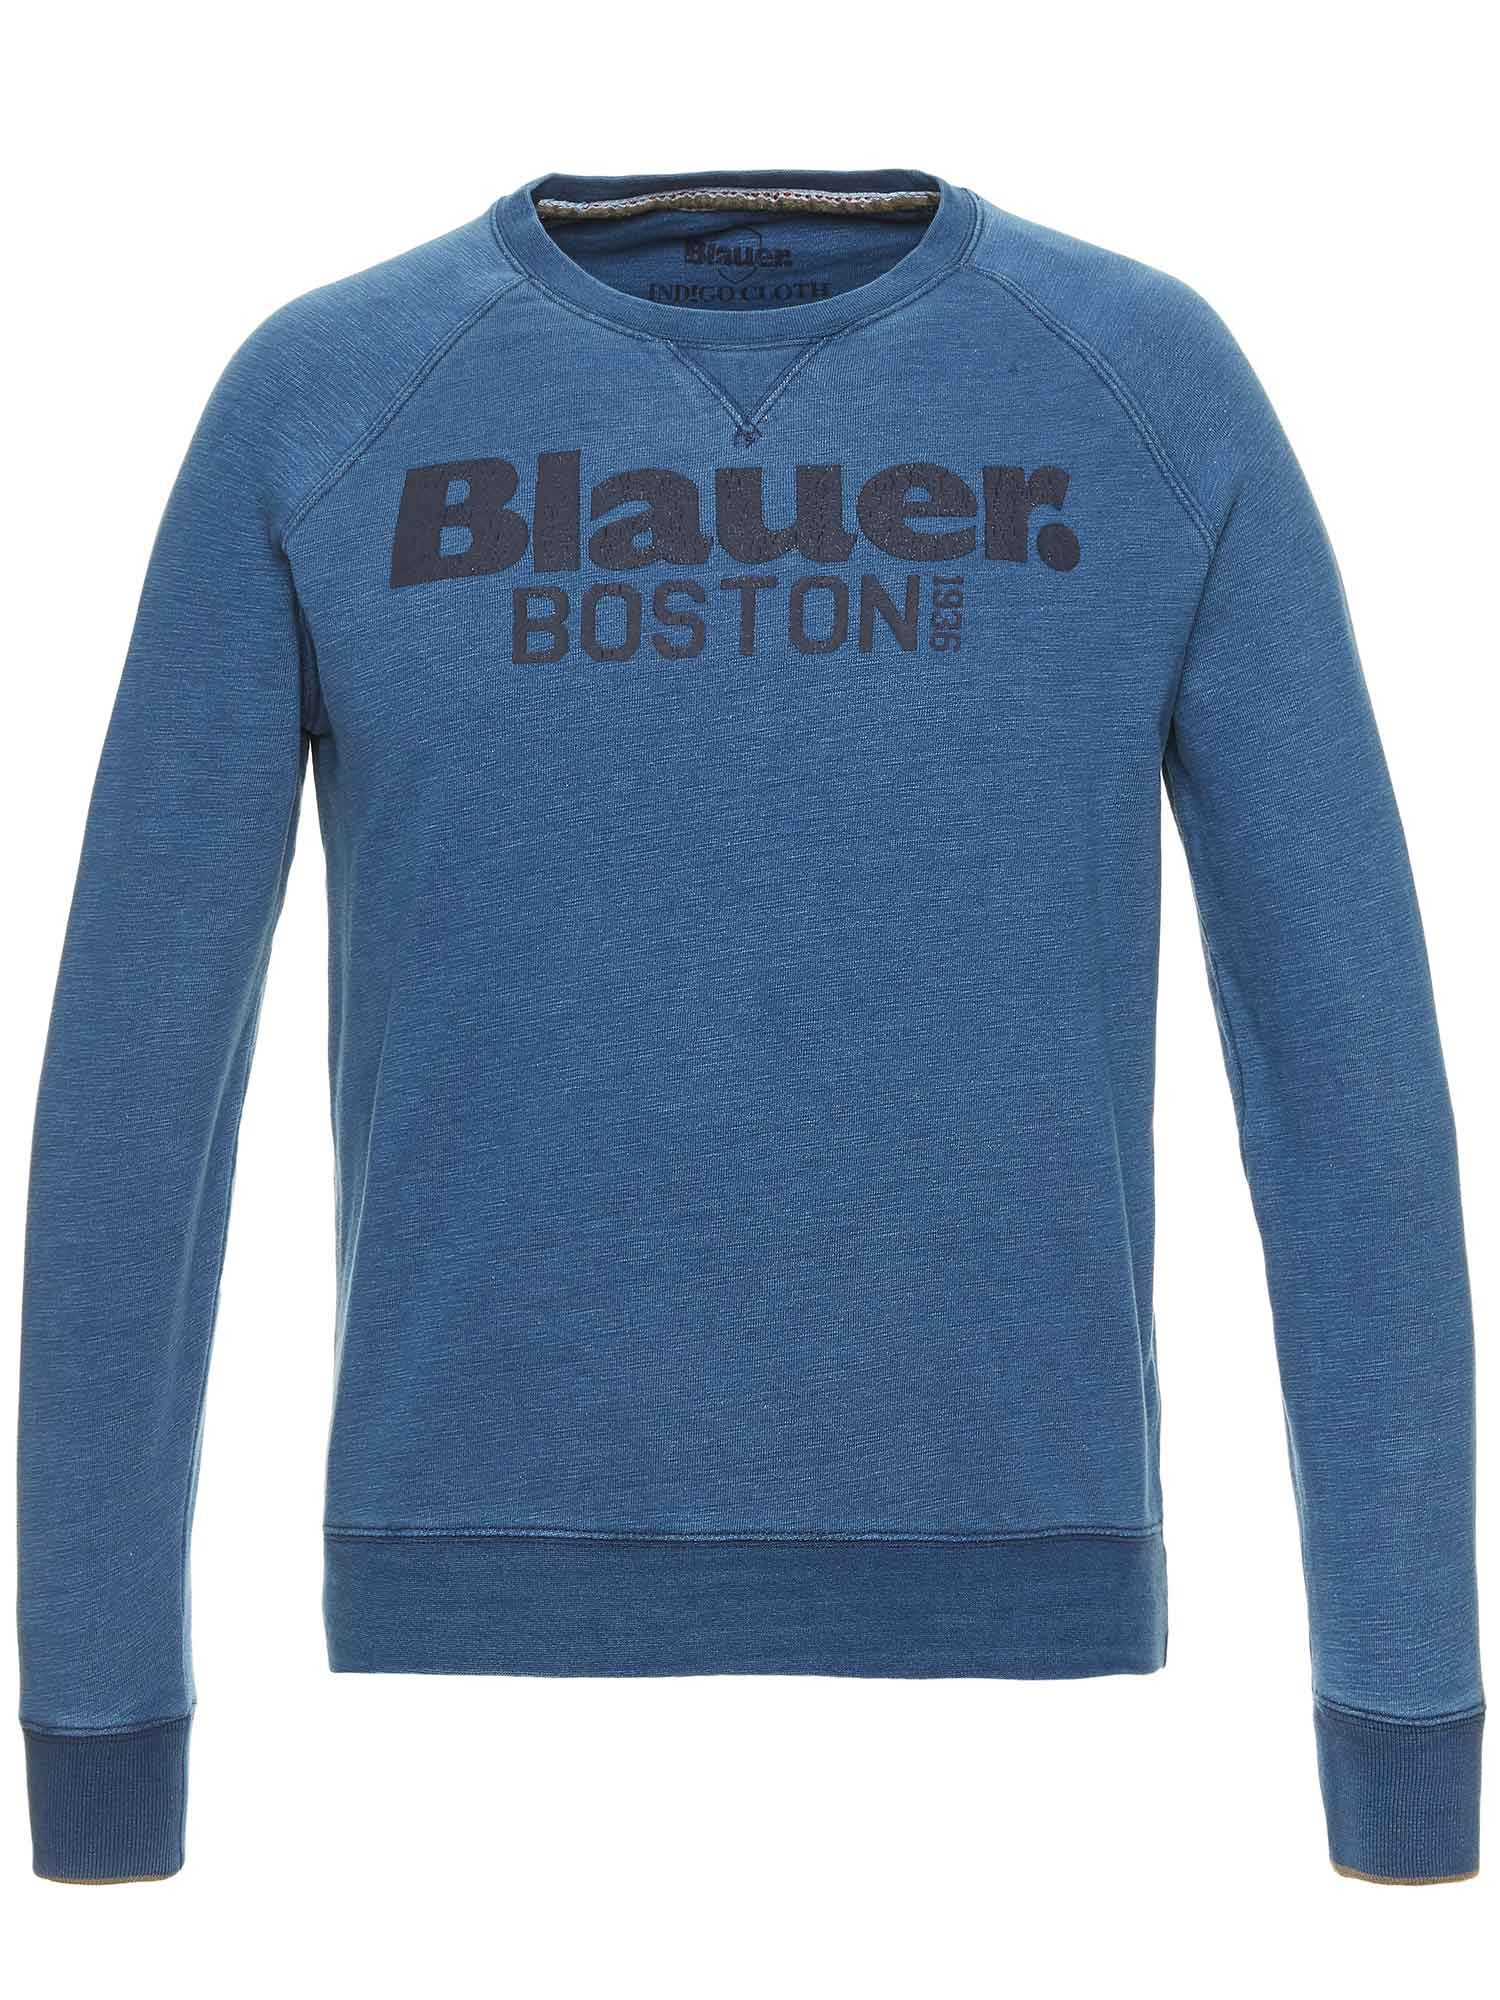 BOSTON 1936 CREW NECK SWEATSHIRT - Blauer